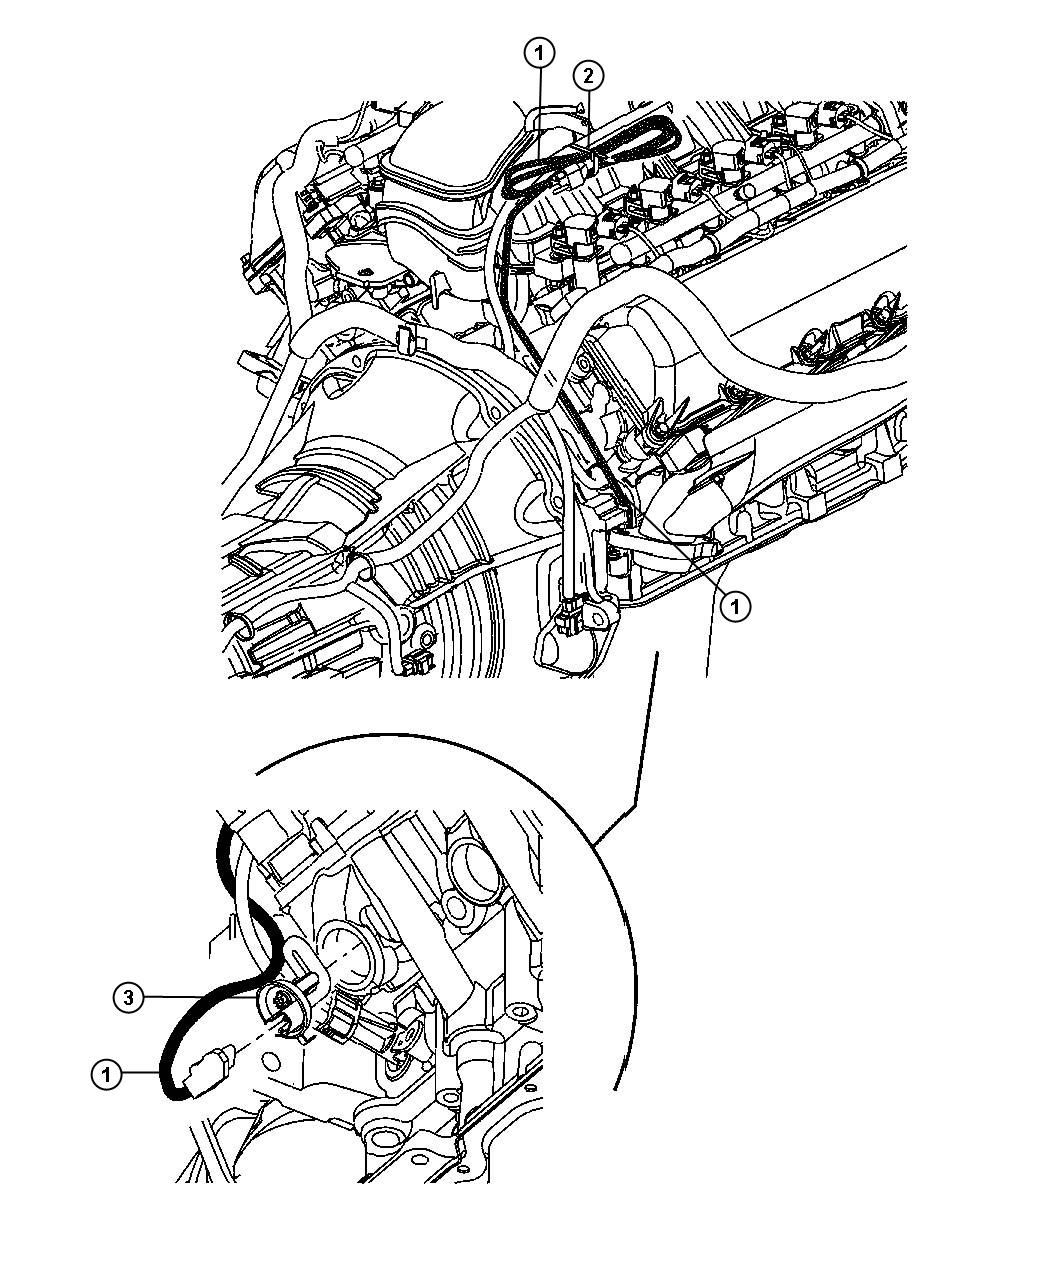 wiring diagram for 2002 jeep grand cherokee with Sprinter Block Heater Location on 2000 Dodge Neon Speaker Wiring Diagram besides Wiring Harness Diagram Lift Gate in addition 1990 Jeep Wrangler Front Axle Vacuum Diagram furthermore Sprinter Block Heater Location additionally Car Headlight Adjustment Locations.